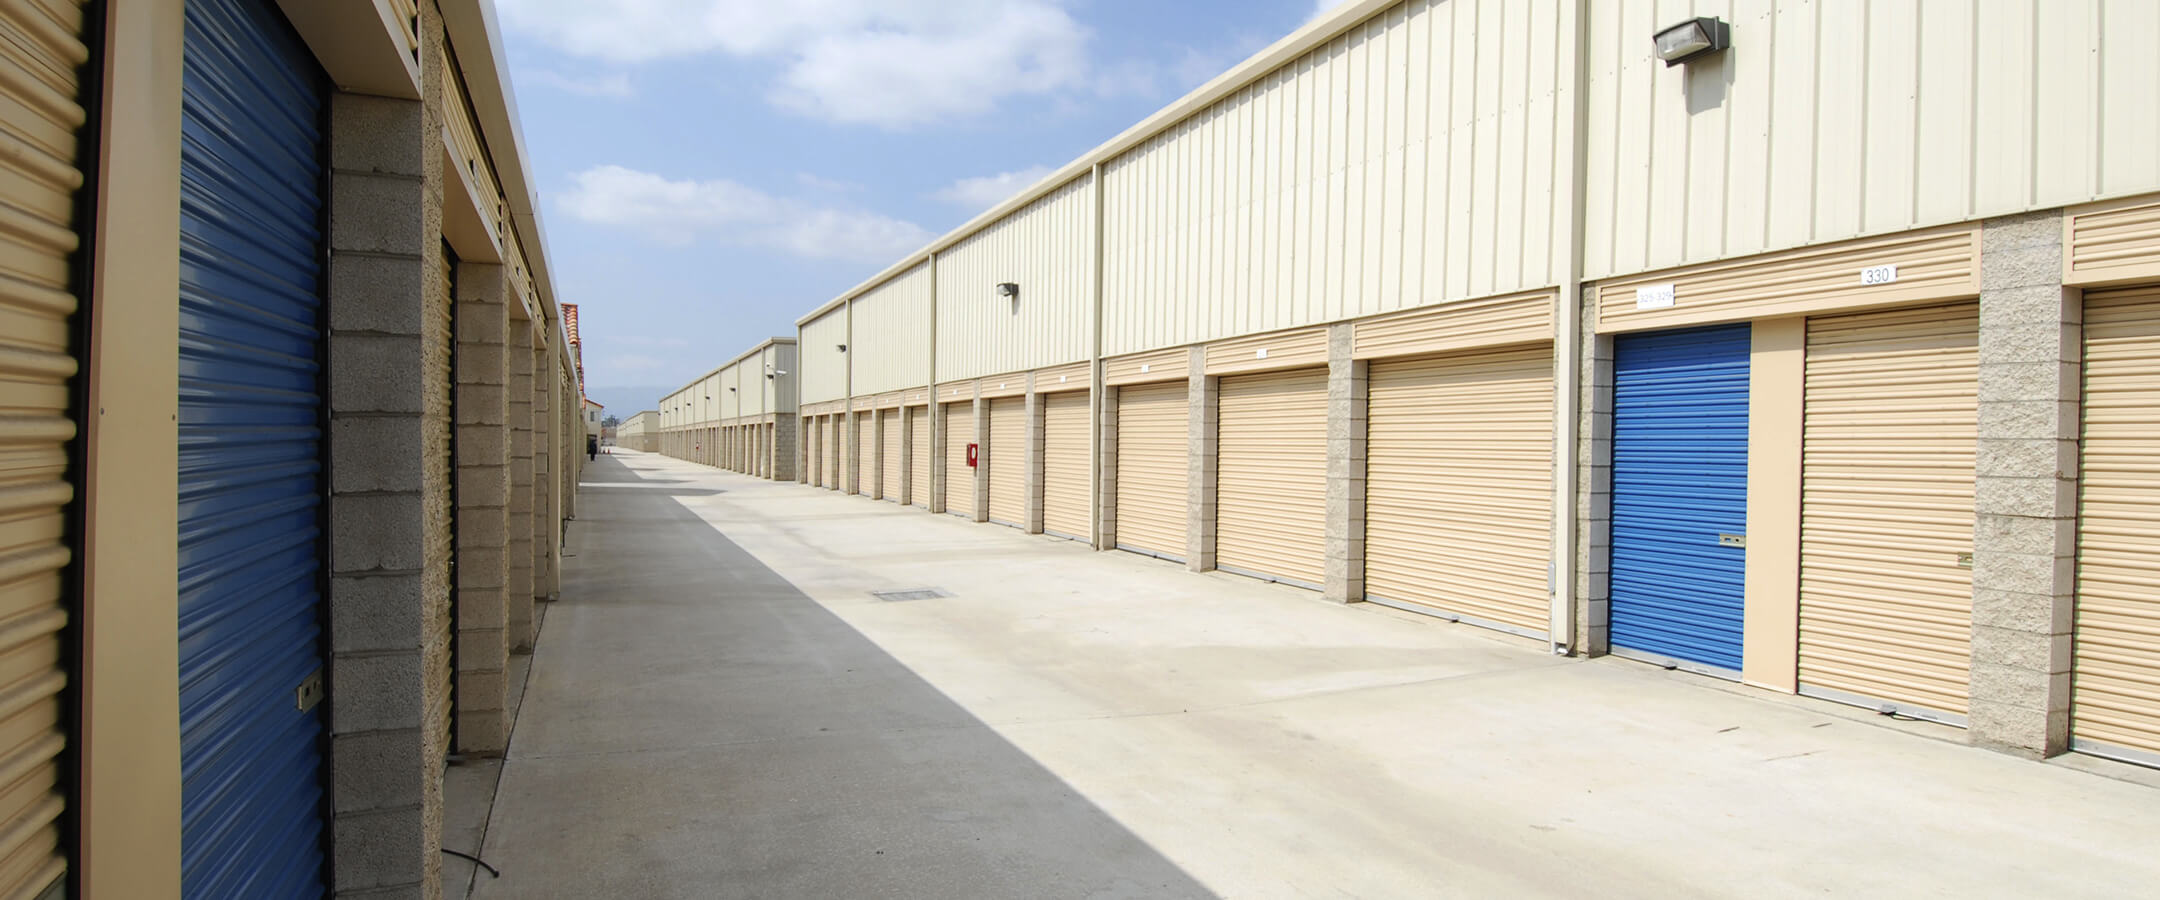 This is a photo of the storage unit interior.